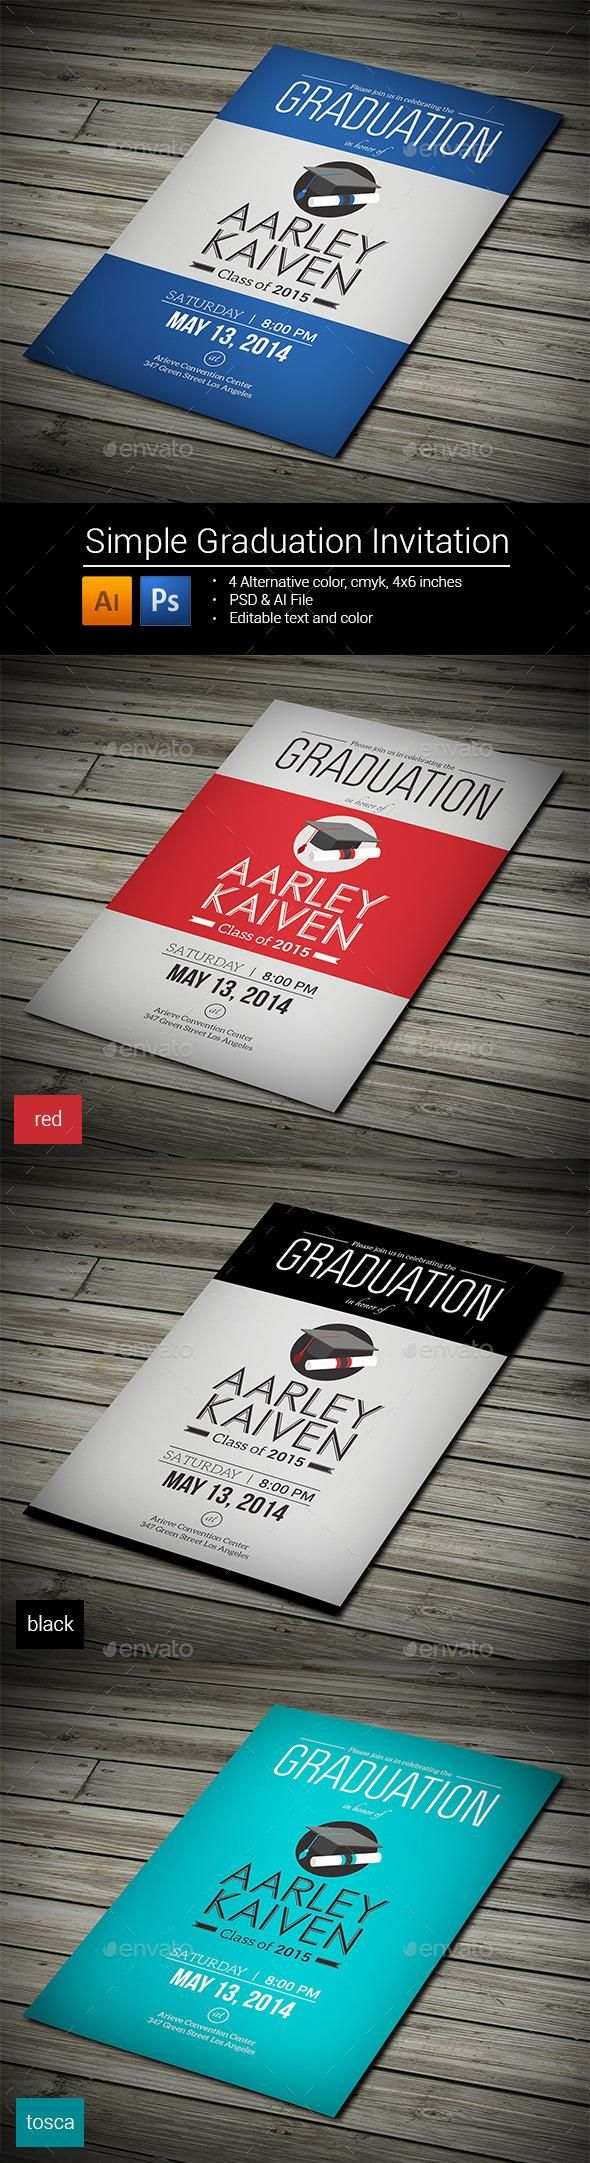 business meeting invitation email template%0A Simple Graduation Invitation  template  cards  print  invites